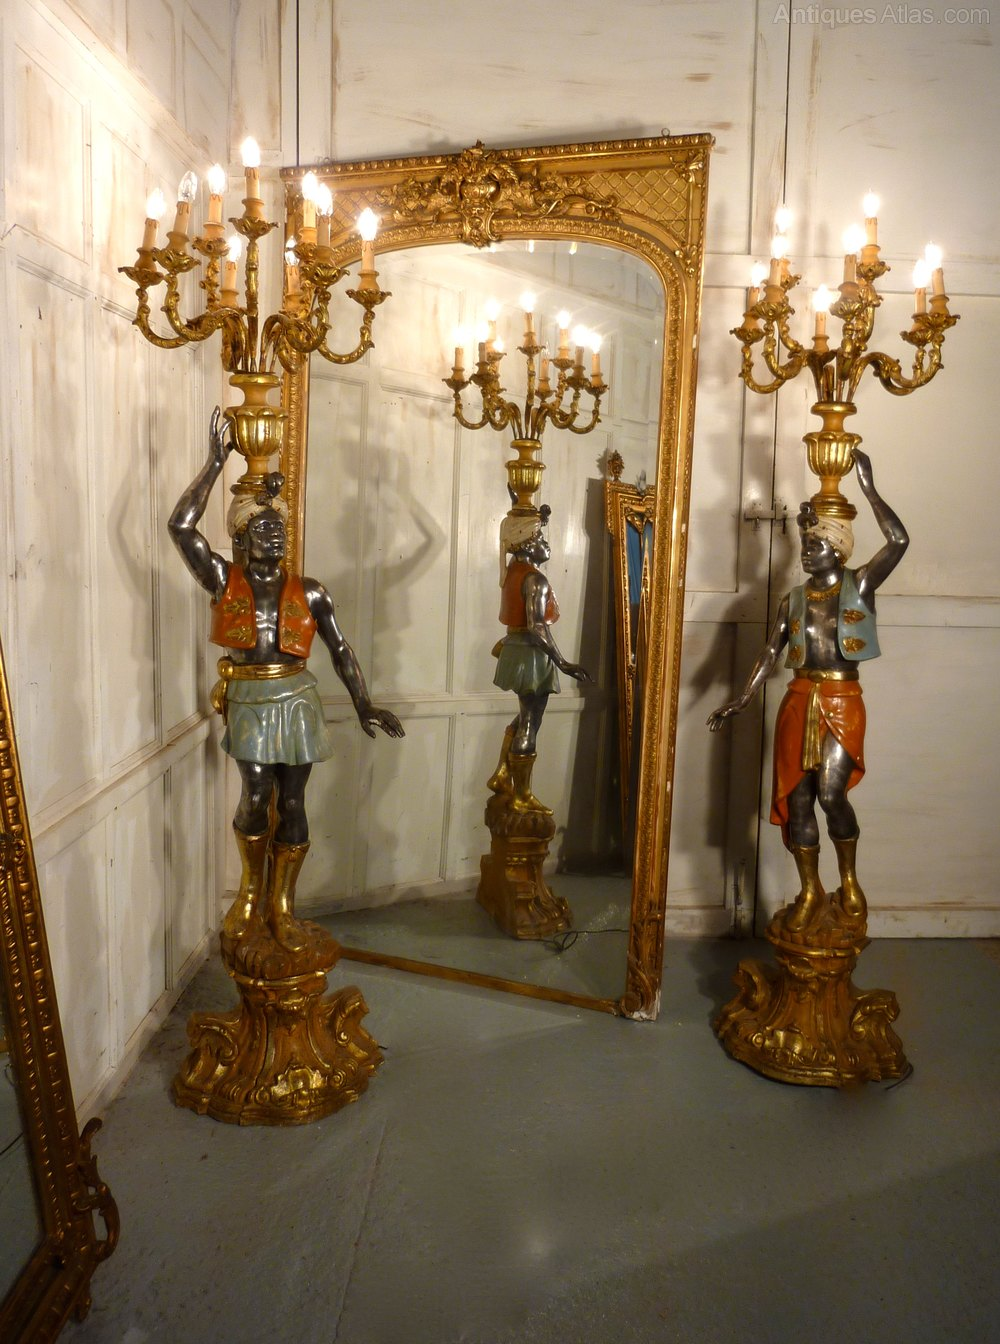 Antiques Atlas - Pair Of Venetian Blackamoor Candelabra